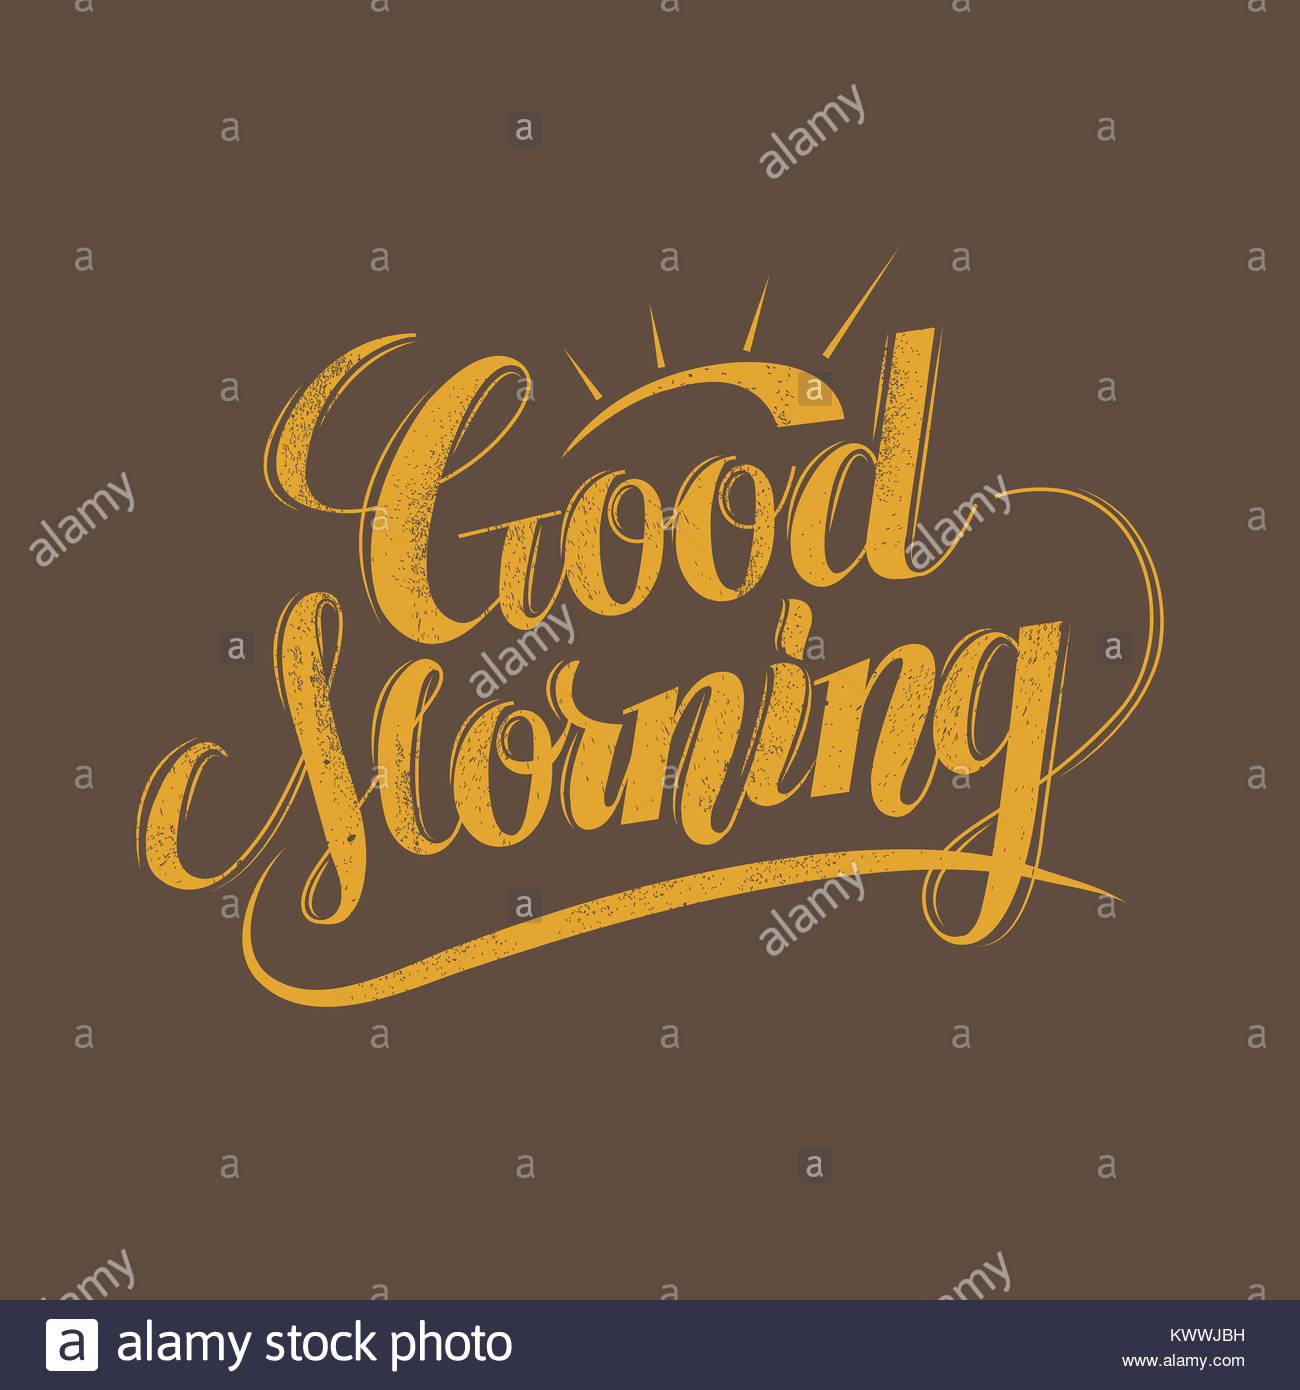 Retro Good Morning Calligraphy Design Over Brown Background